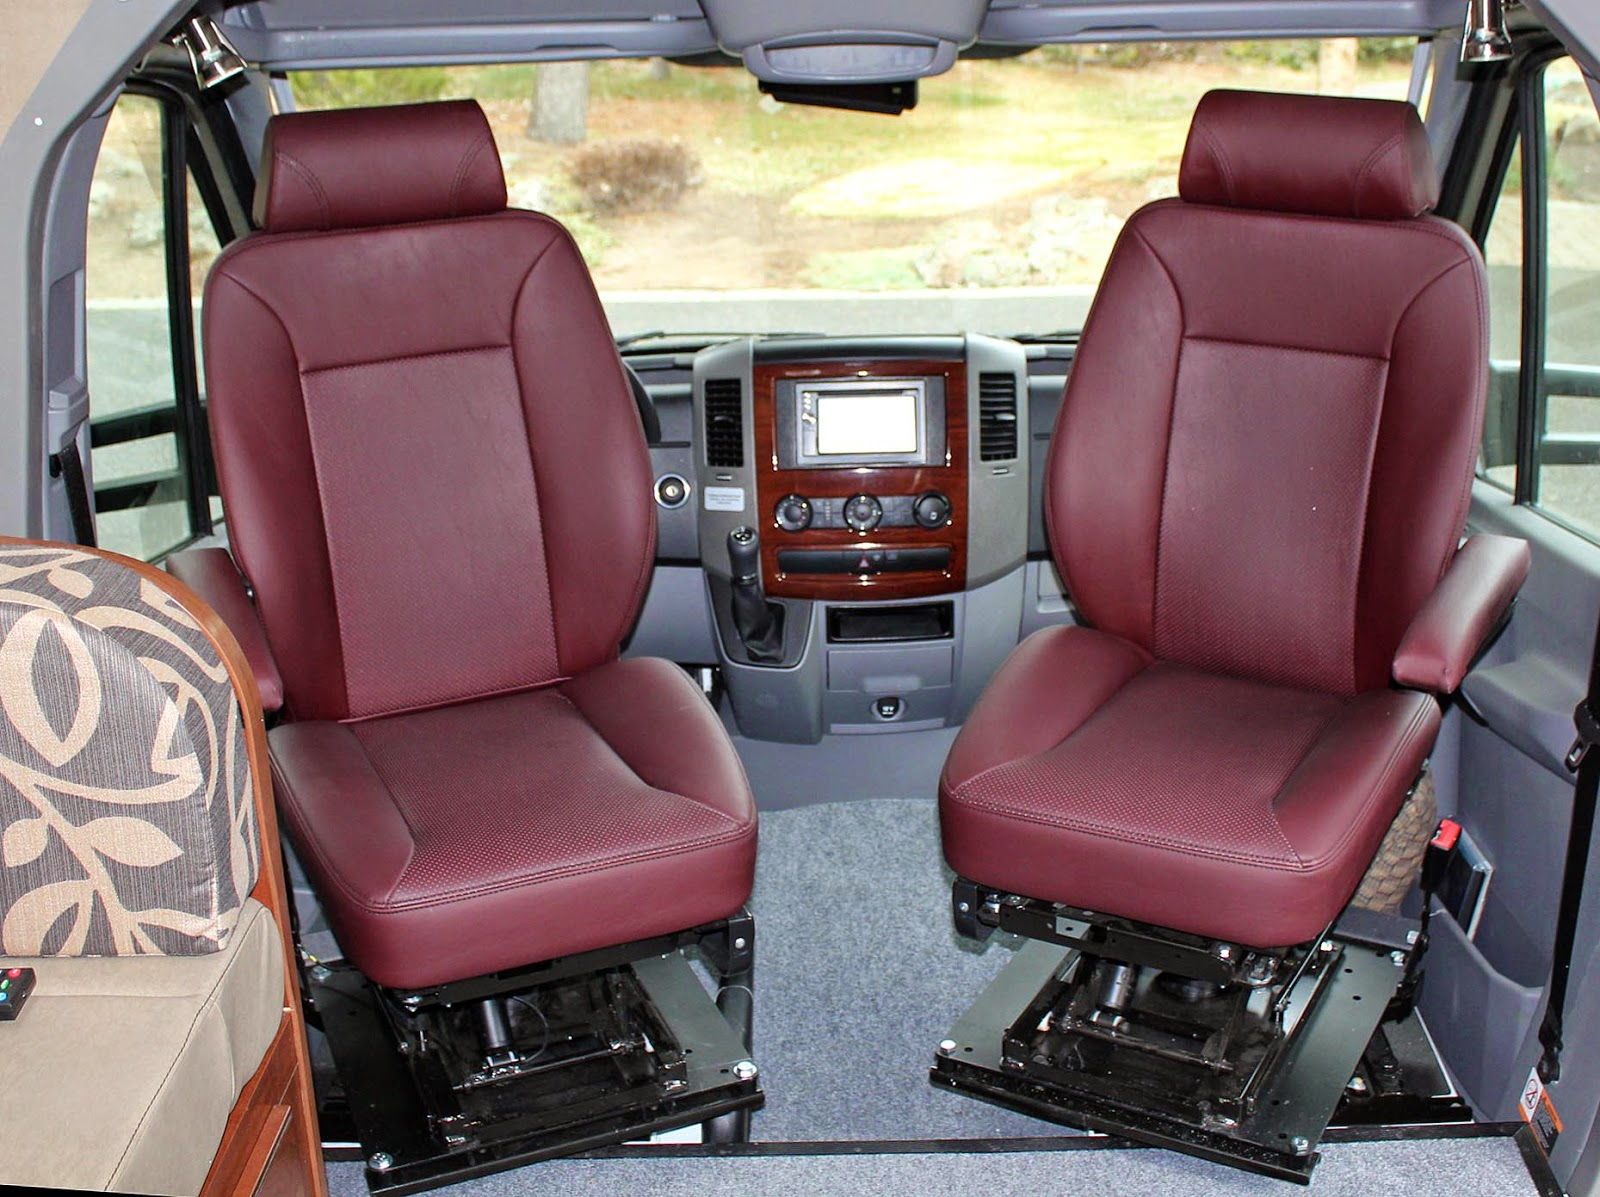 91 Semi Truck Seats Whether You Need A Big Rig Seat  : BothSeatsUp from motocyclenews.top size 1600 x 1197 jpeg 343kB